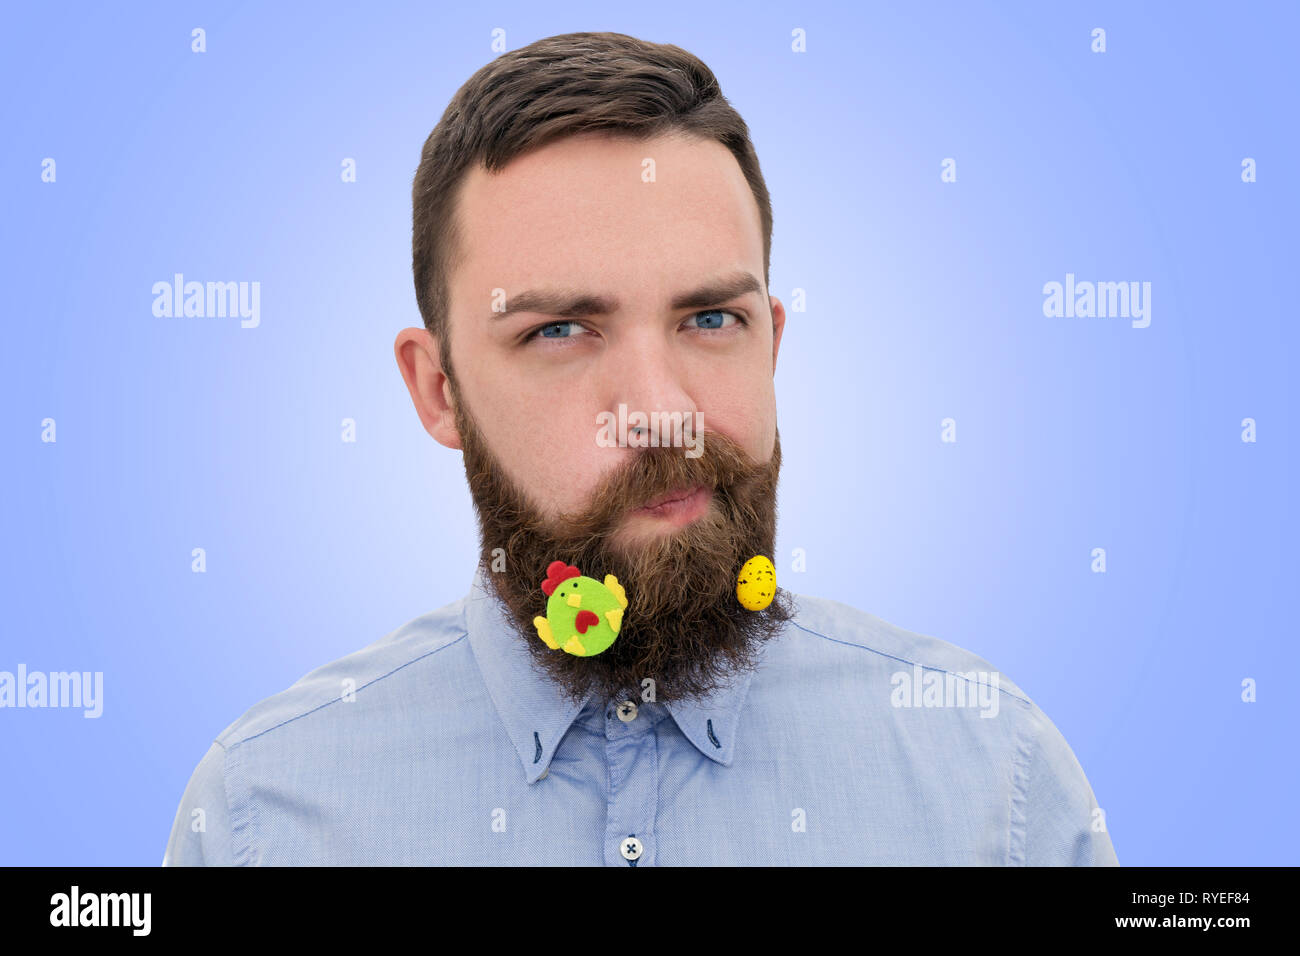 a3140fca5 Portrait of handsome bearded man with decorated beard for Easter on blue  background. Happy Easter